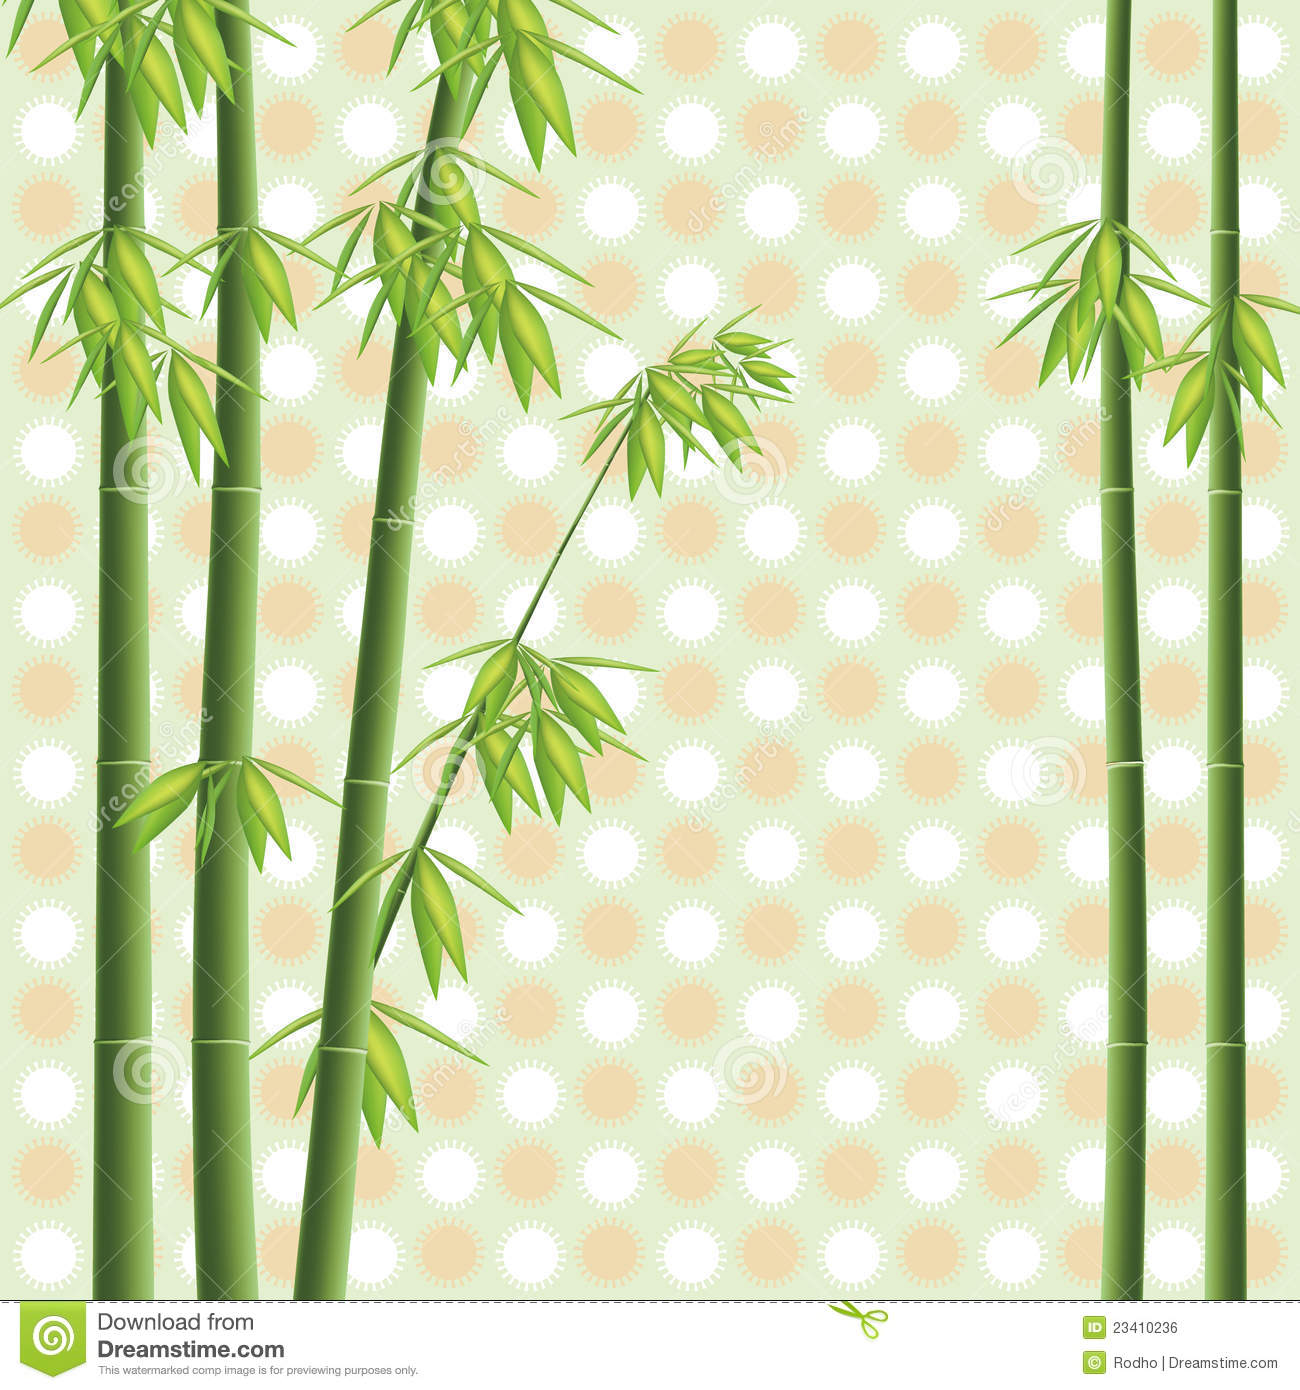 Vector Bamboo Tree Royalty Free Stock Image - Image: 23410236